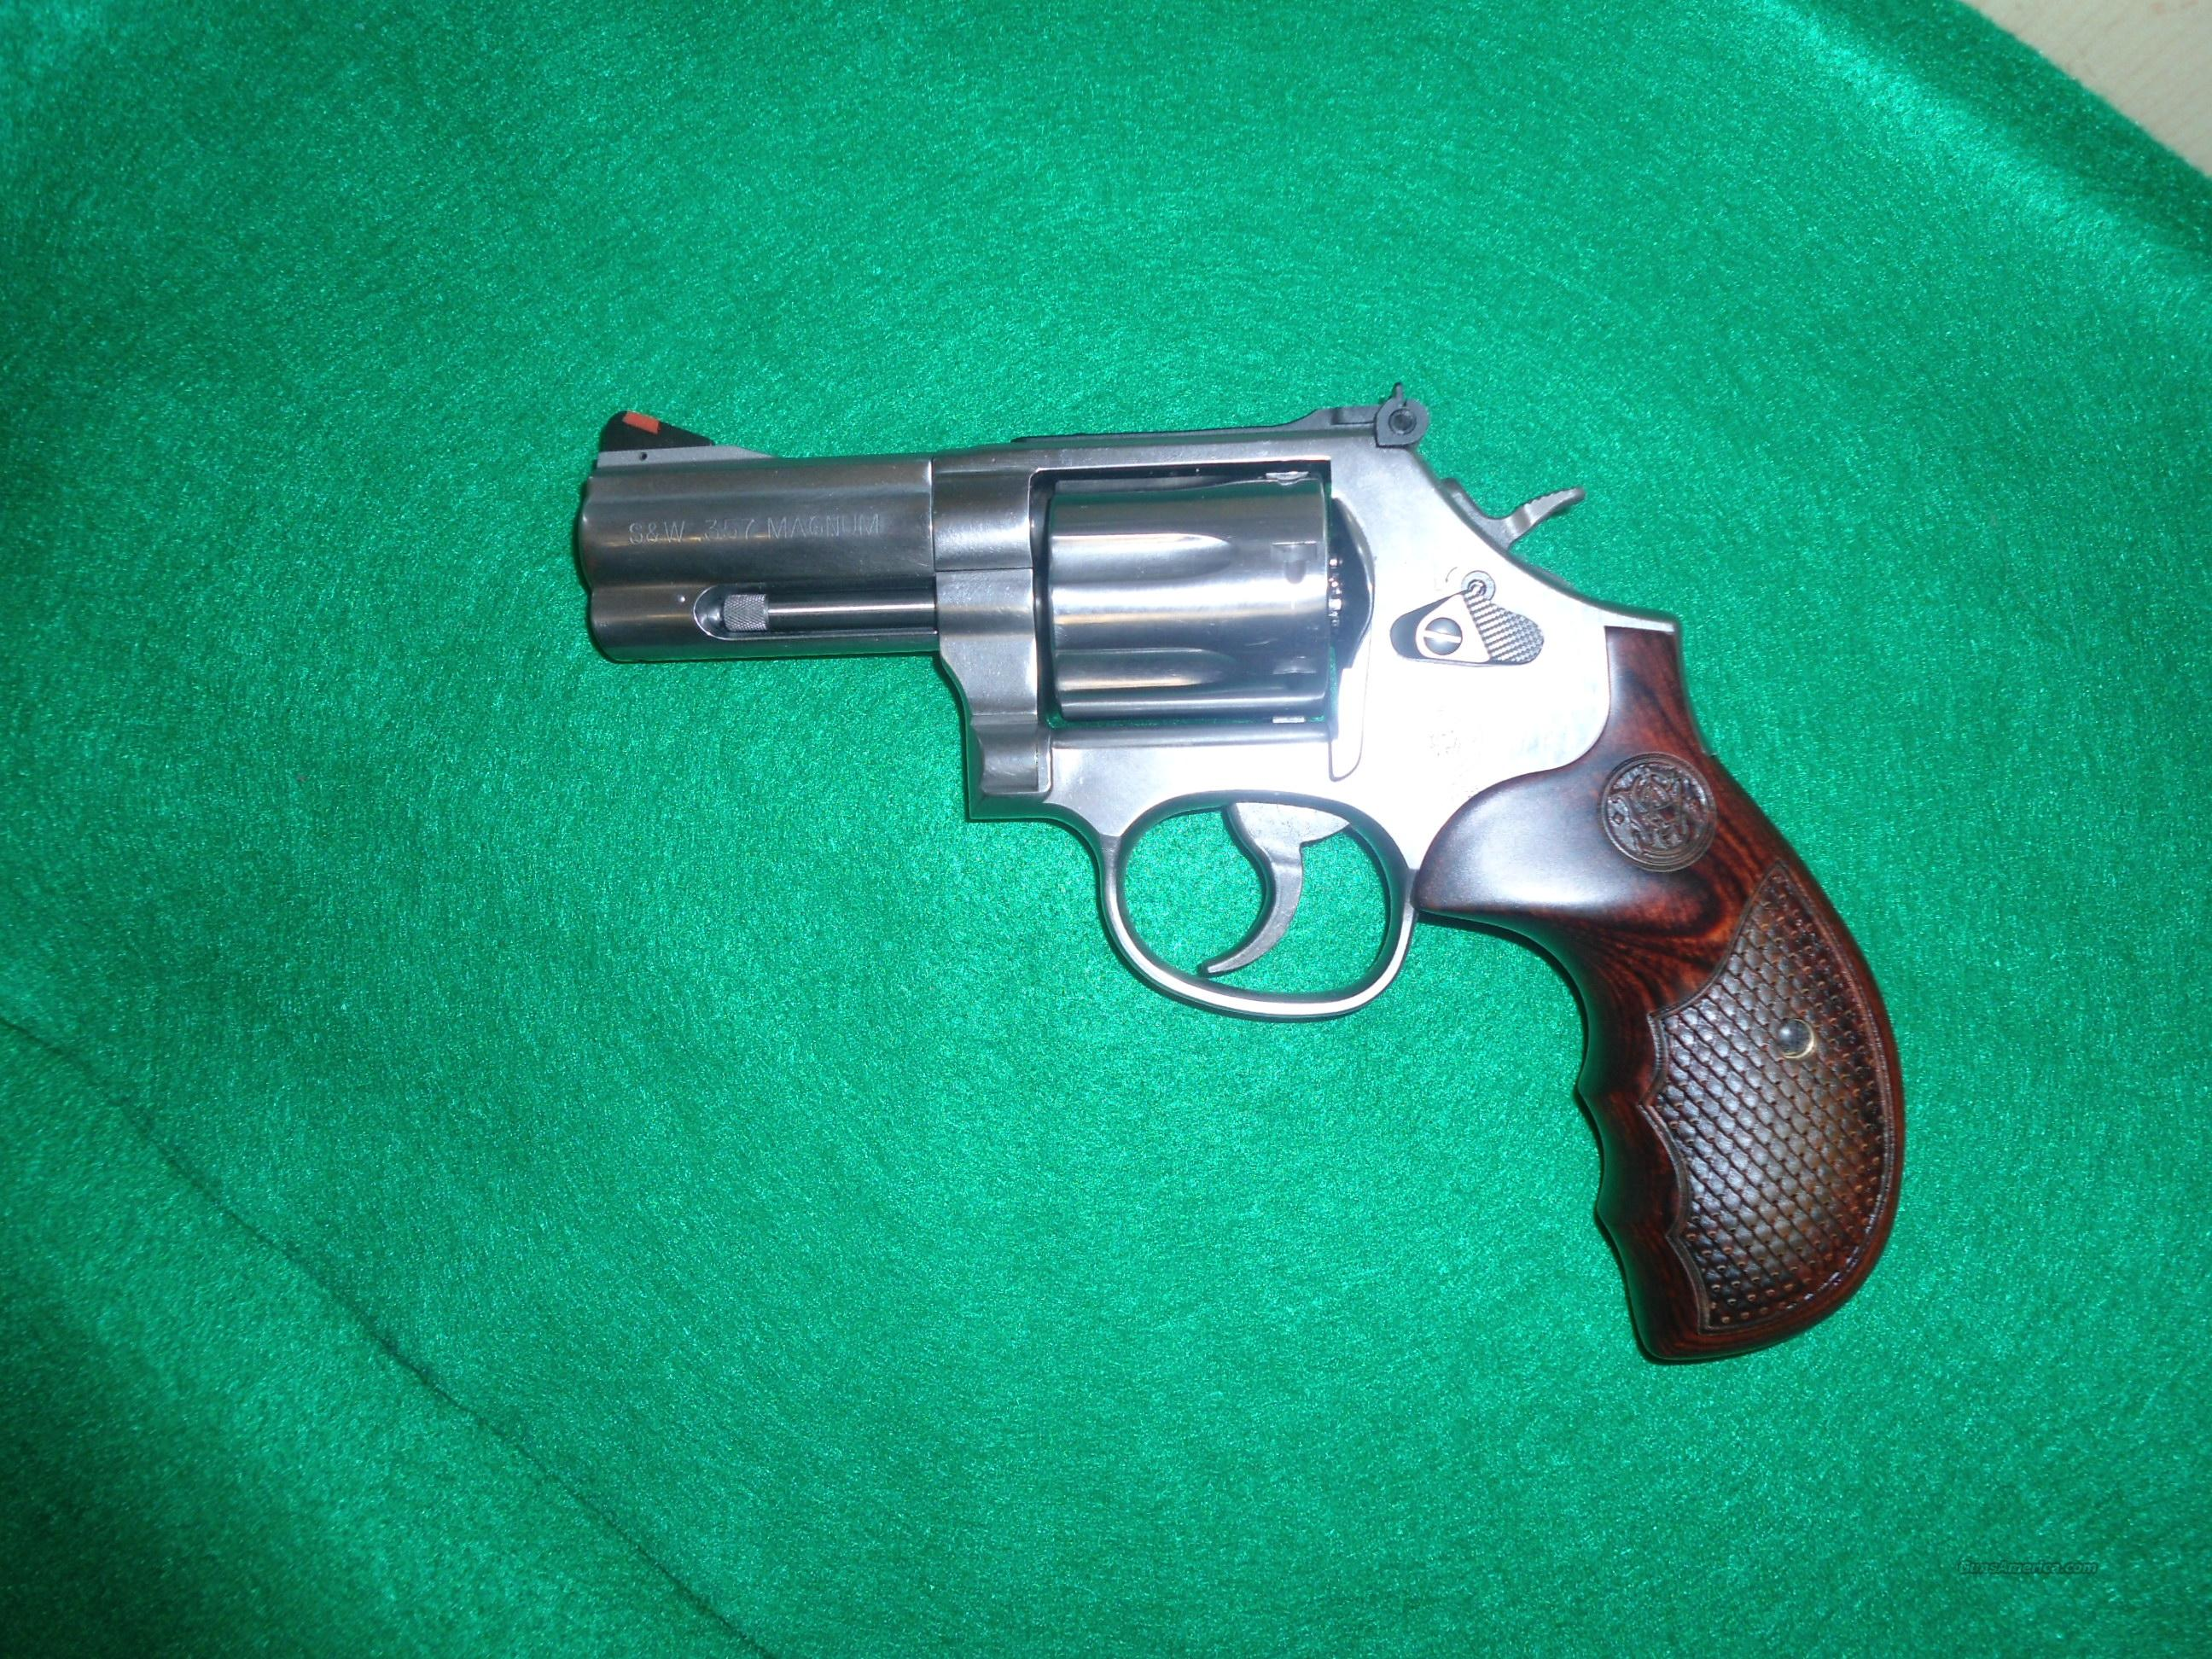 SMITH AND WESSON 686 DELUXE  Guns > Pistols > Smith & Wesson Revolvers > Full Frame Revolver